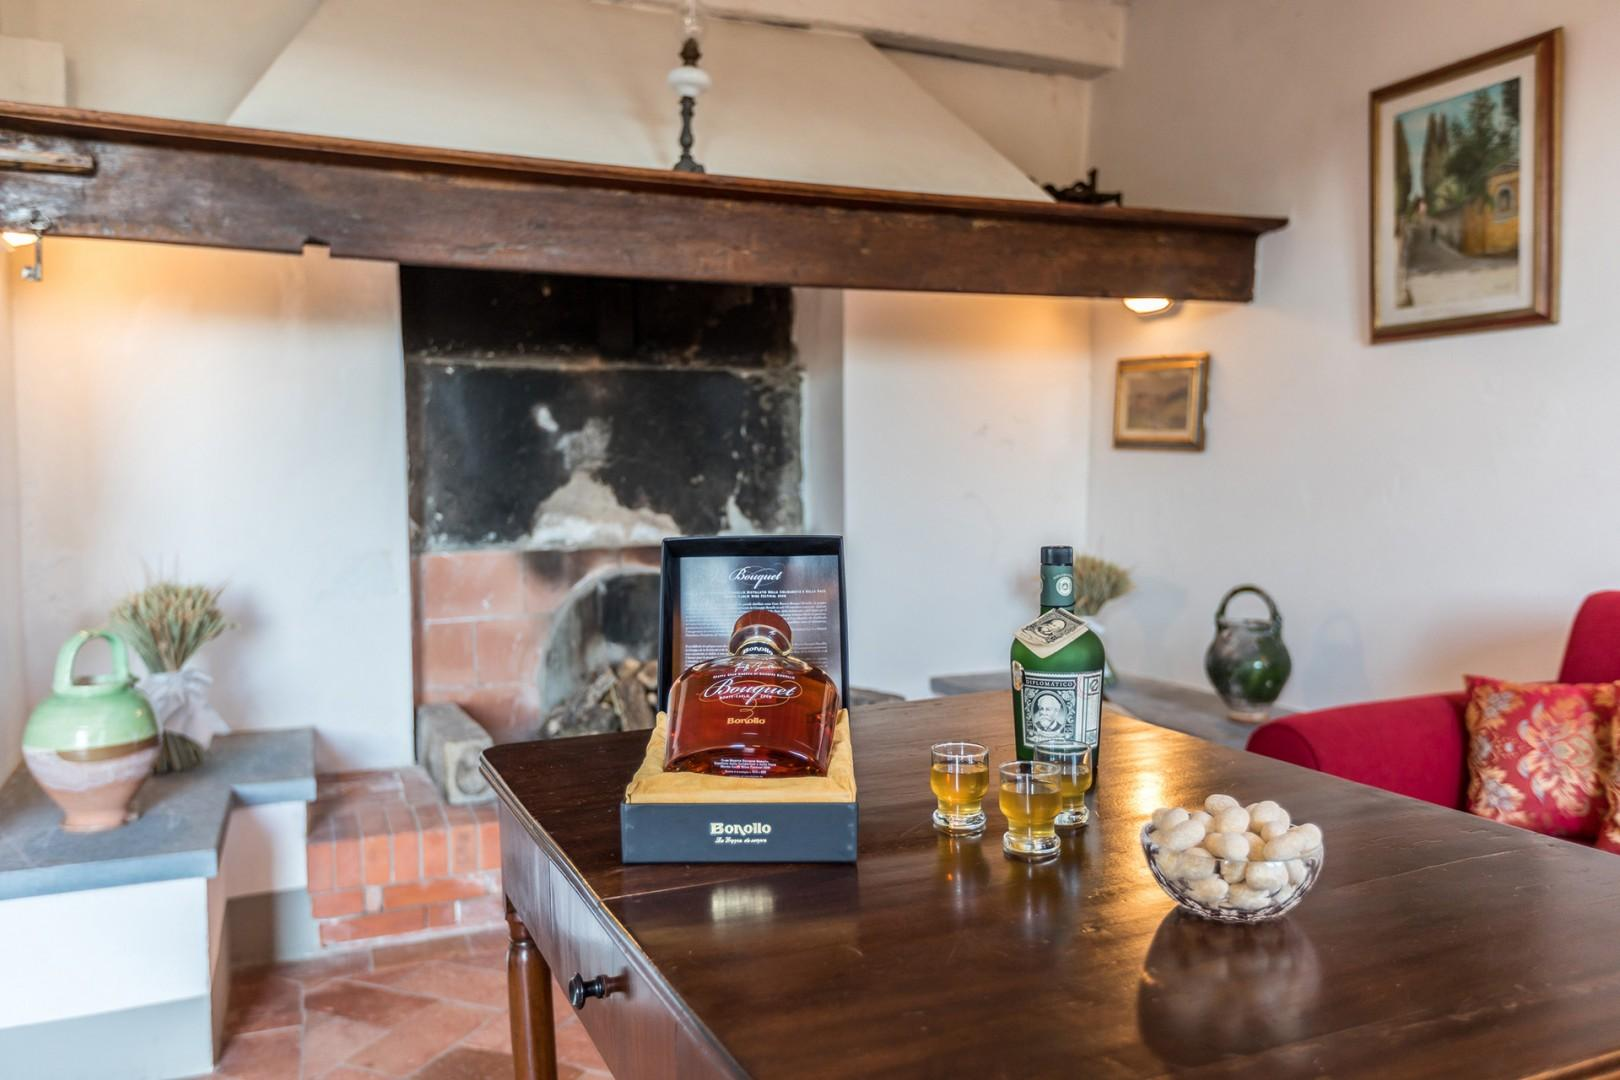 There is a second living room, with fireplace, on the ground entry level of the villa.